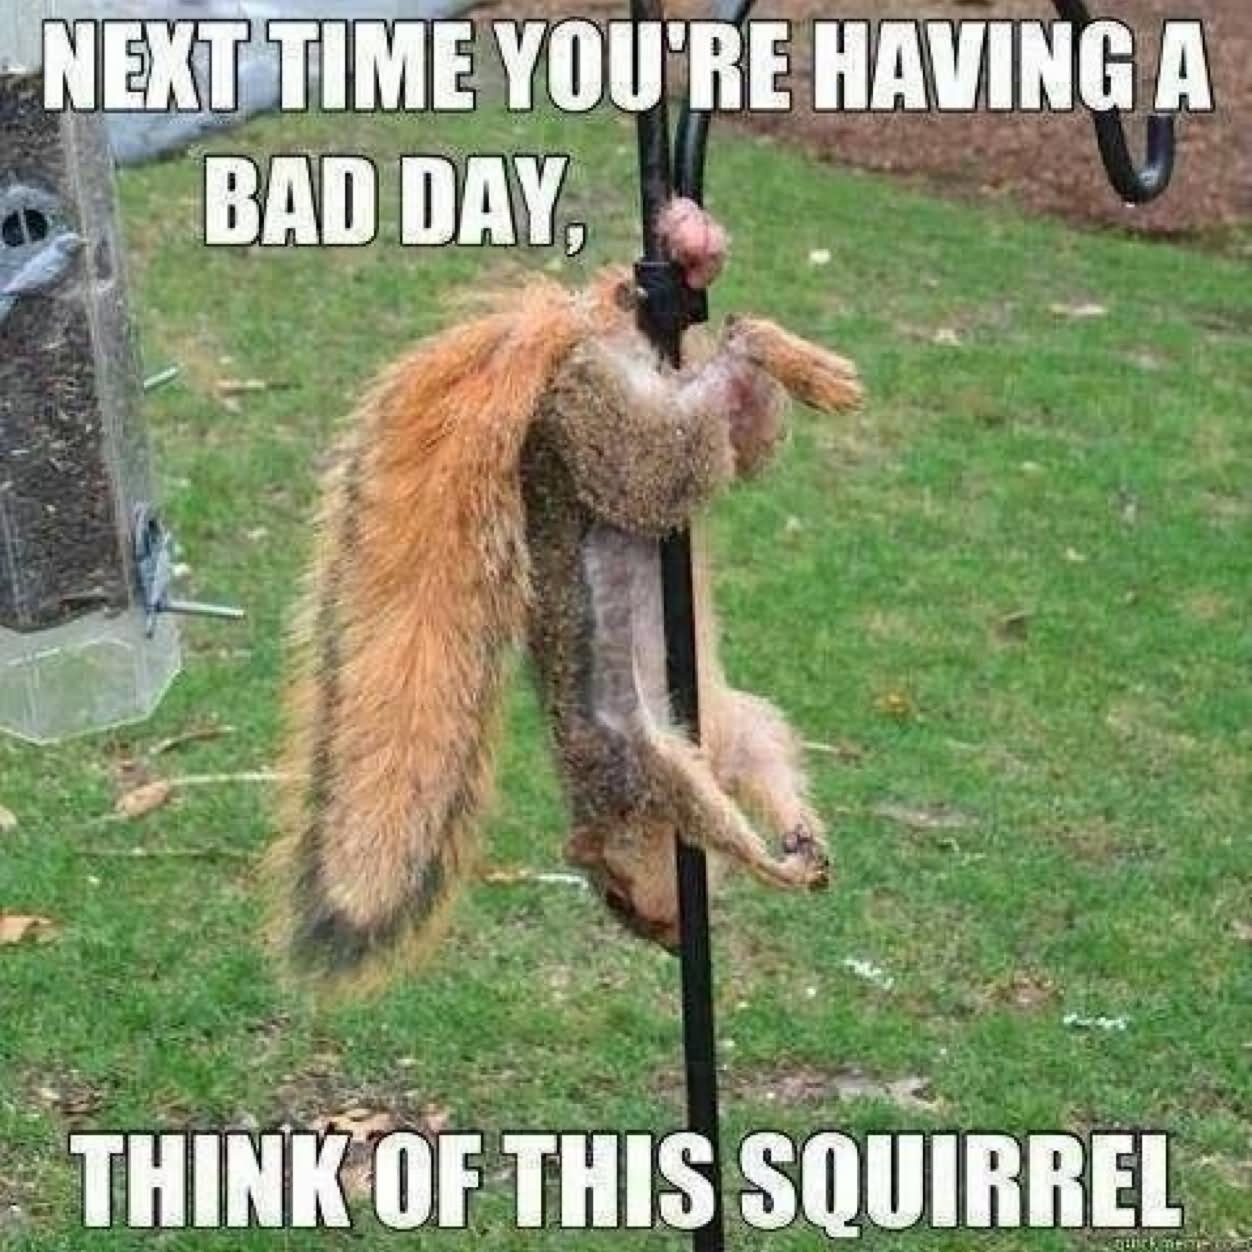 Funny Squirrel Meme Next Time You Are Having Bad Day Picture 31 most funniest squirrel meme pictures and photos